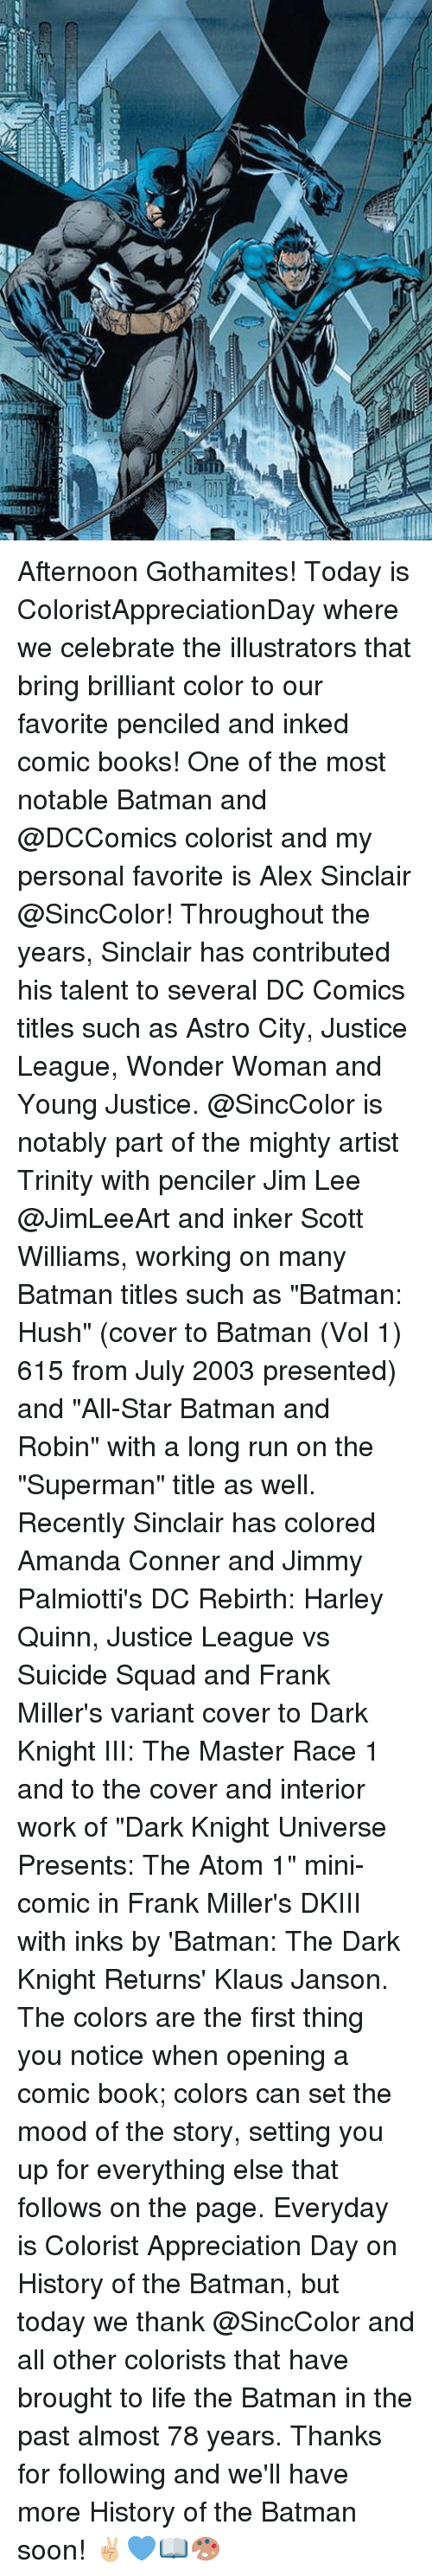 """Notability: Afternoon Gothamites! Today is ColoristAppreciationDay where we celebrate the illustrators that bring brilliant color to our favorite penciled and inked comic books! One of the most notable Batman and @DCComics colorist and my personal favorite is Alex Sinclair @SincColor! Throughout the years, Sinclair has contributed his talent to several DC Comics titles such as Astro City, Justice League, Wonder Woman and Young Justice. @SincColor is notably part of the mighty artist Trinity with penciler Jim Lee @JimLeeArt and inker Scott Williams, working on many Batman titles such as """"Batman: Hush"""" (cover to Batman (Vol 1) 615 from July 2003 presented) and """"All-Star Batman and Robin"""" with a long run on the """"Superman"""" title as well. Recently Sinclair has colored Amanda Conner and Jimmy Palmiotti's DC Rebirth: Harley Quinn, Justice League vs Suicide Squad and Frank Miller's variant cover to Dark Knight III: The Master Race 1 and to the cover and interior work of """"Dark Knight Universe Presents: The Atom 1"""" mini-comic in Frank Miller's DKIII with inks by 'Batman: The Dark Knight Returns' Klaus Janson. The colors are the first thing you notice when opening a comic book; colors can set the mood of the story, setting you up for everything else that follows on the page. Everyday is Colorist Appreciation Day on History of the Batman, but today we thank @SincColor and all other colorists that have brought to life the Batman in the past almost 78 years. Thanks for following and we'll have more History of the Batman soon! ✌🏼️💙📖🎨"""